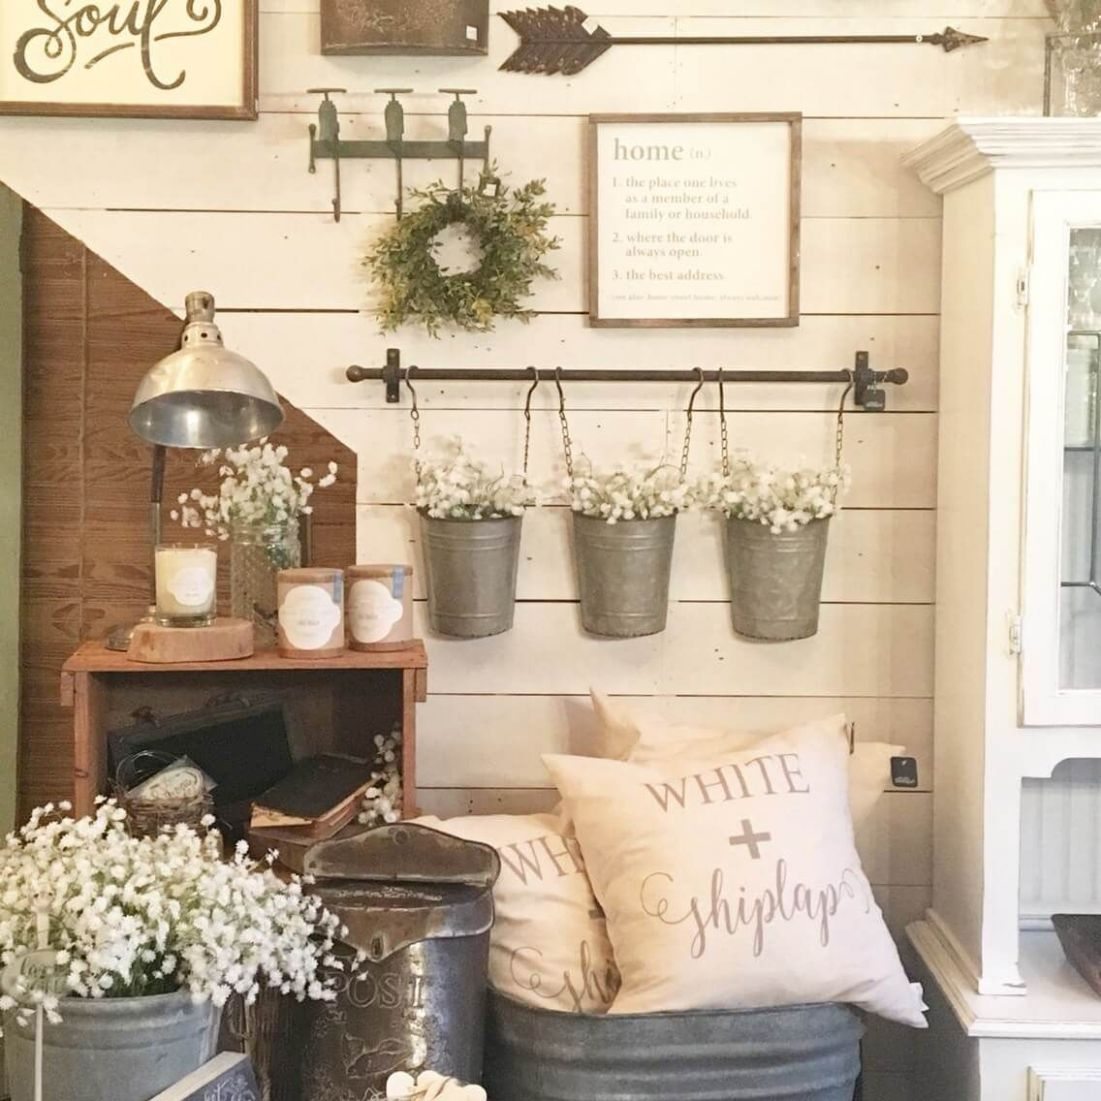 9+ Charming Farmhouse Wall Decor Ideas to Add Some Rustic Flair ...